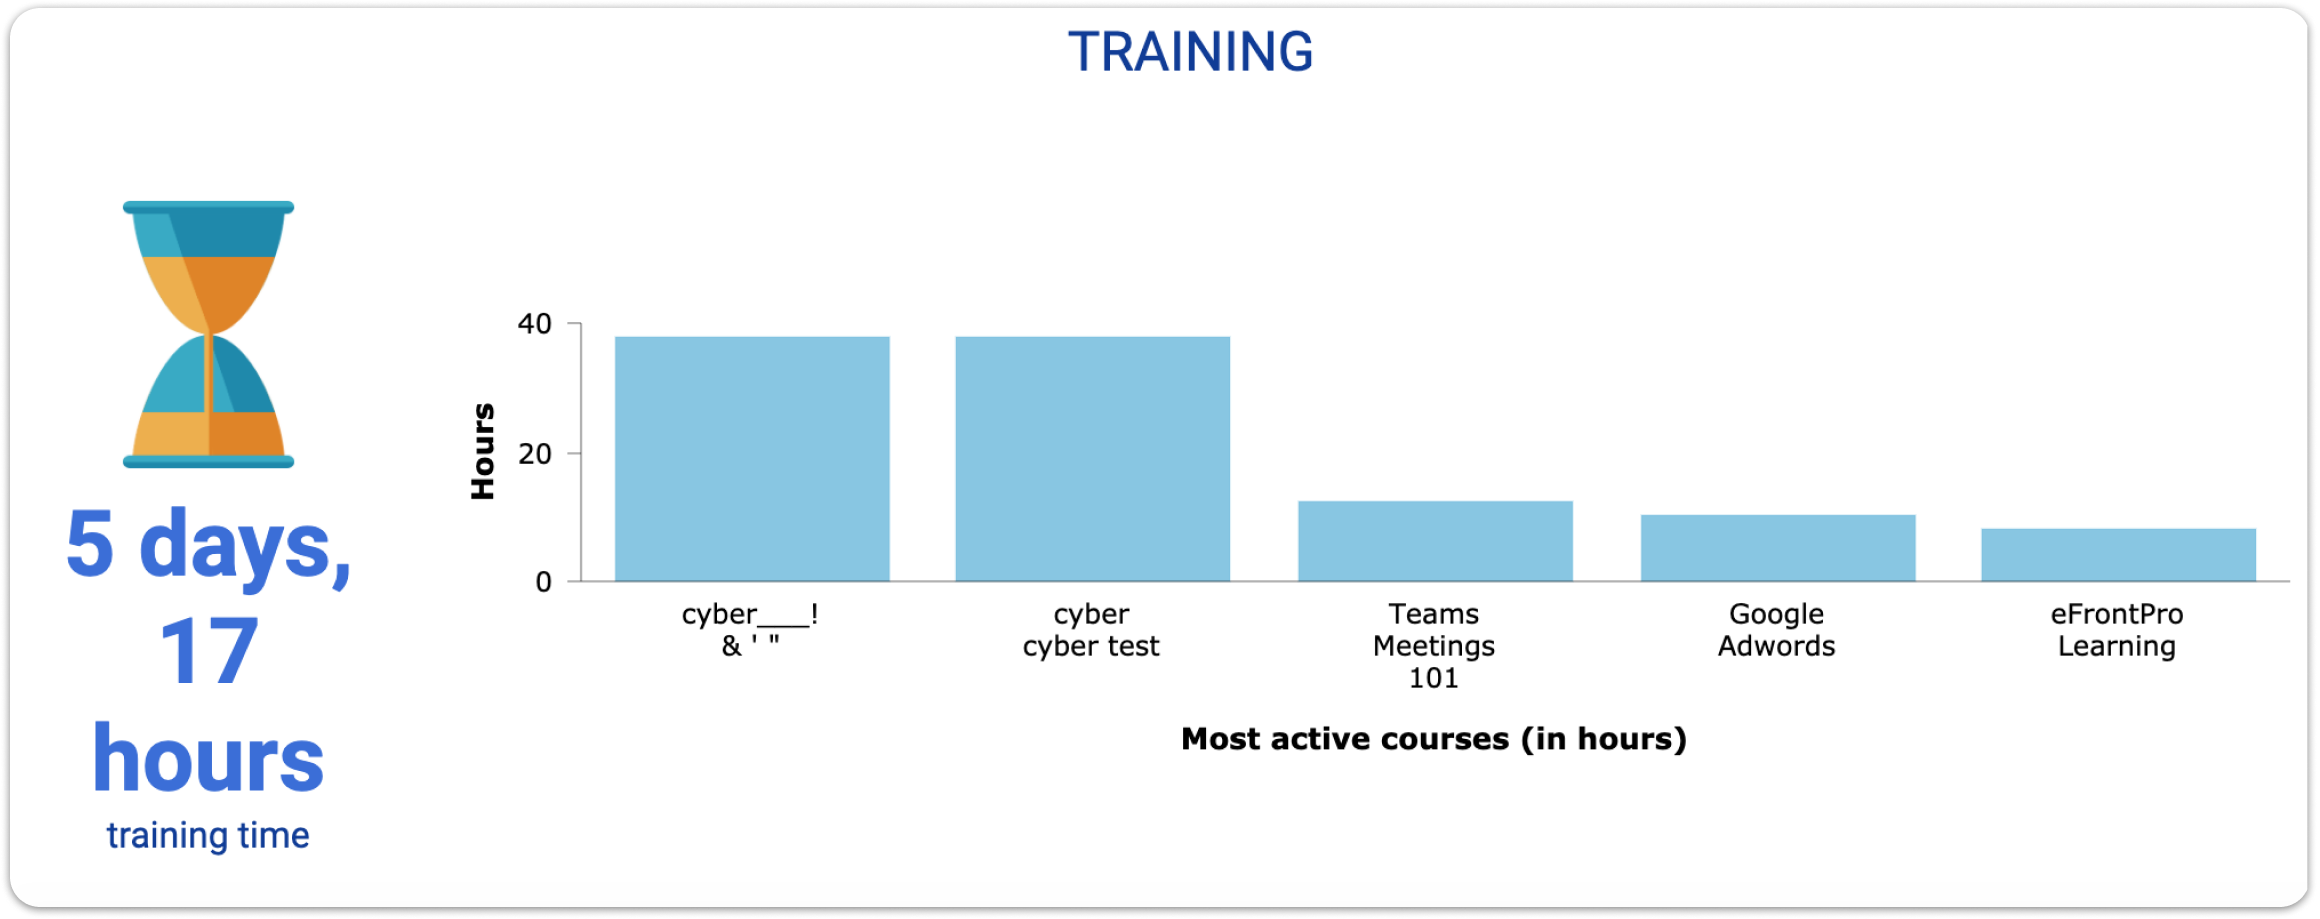 info_training_rdy.png